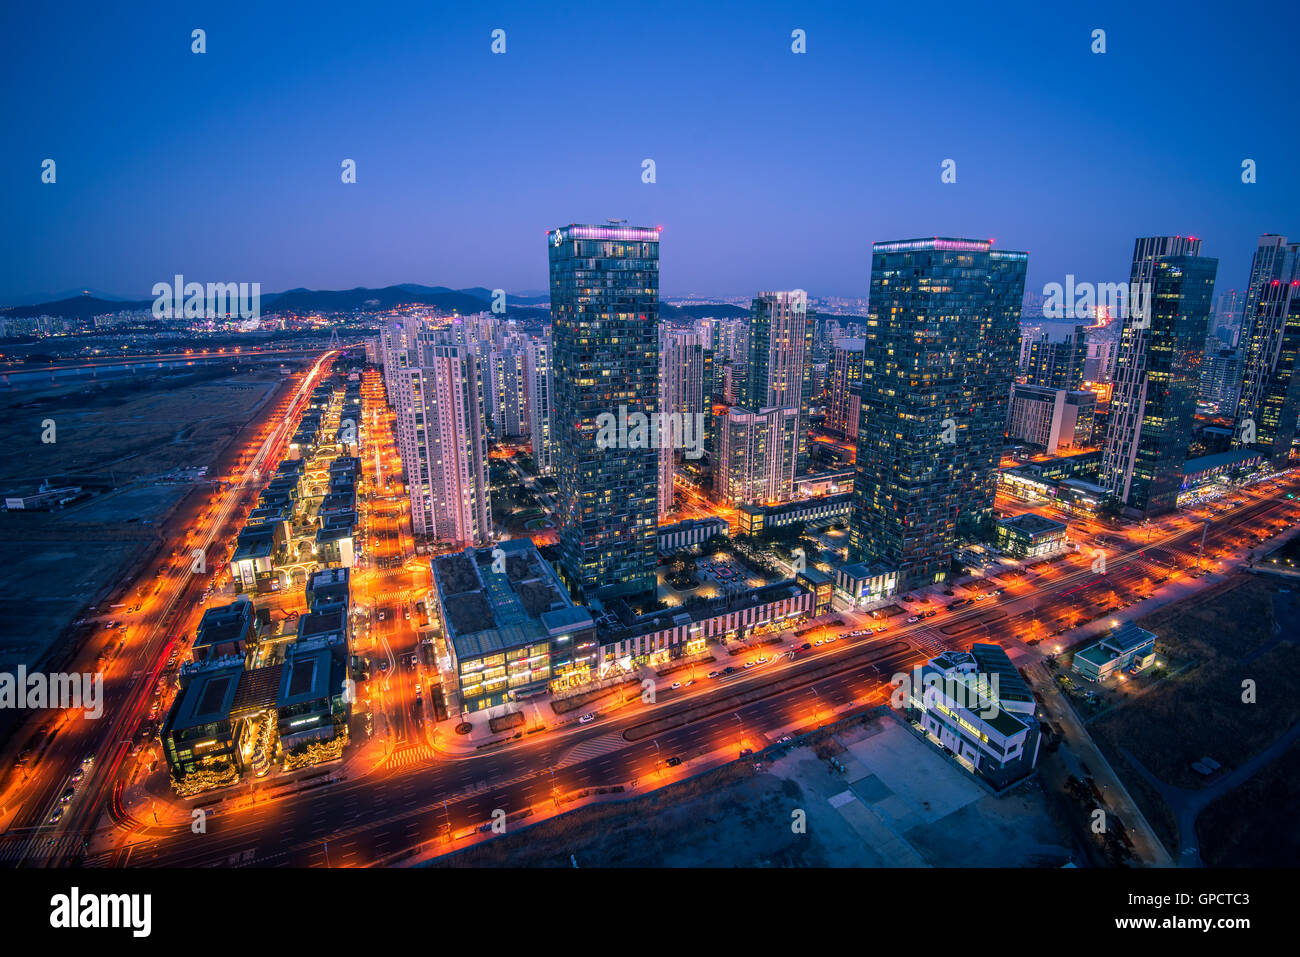 Central Park, incheon, South Korea - Stock Image